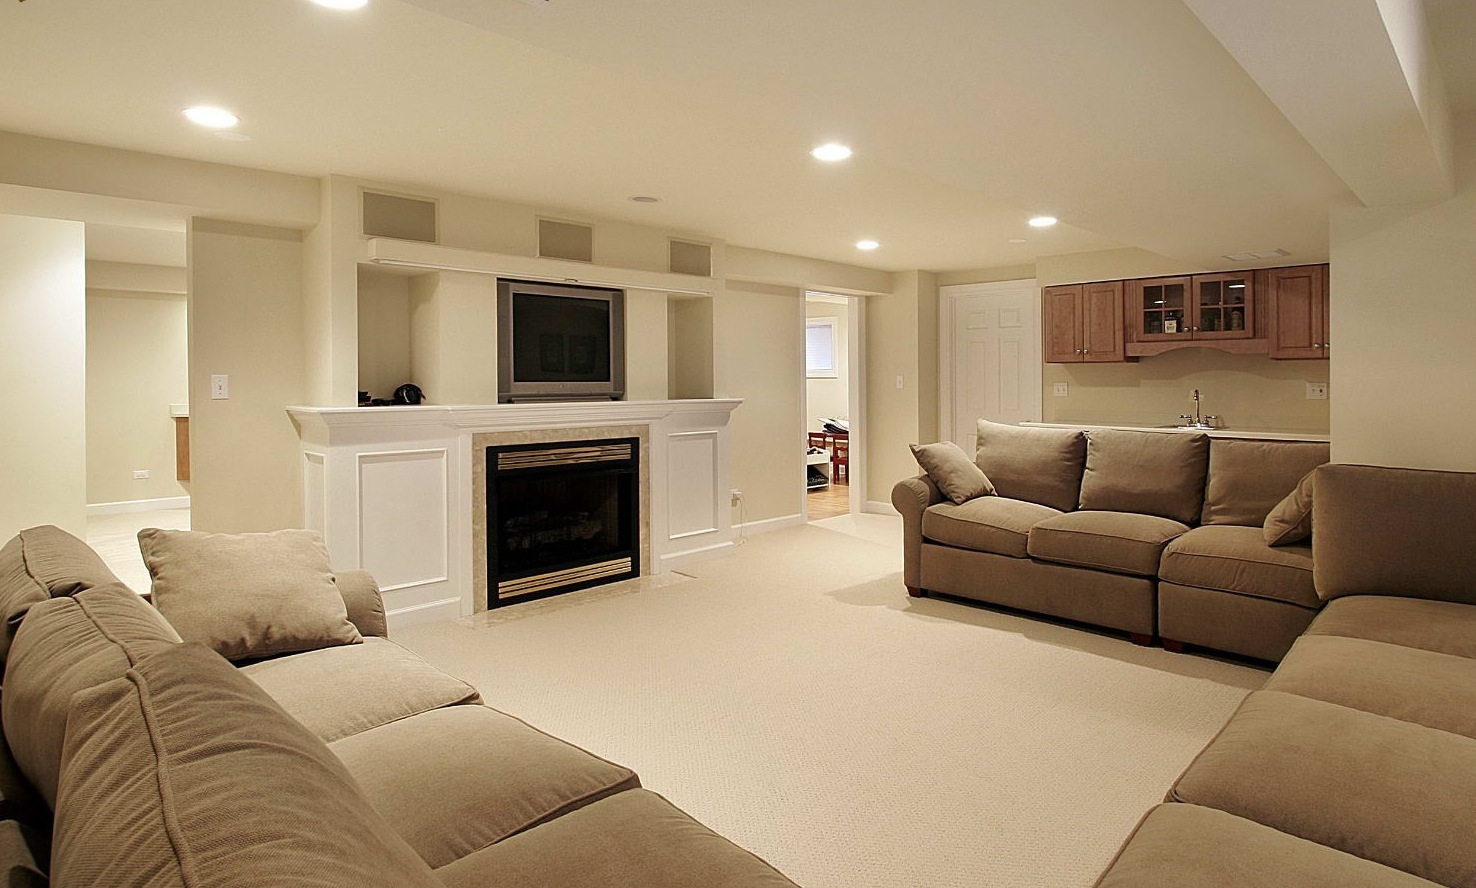 Basement Design Ideas ceiling sense when designing your basement 30 Basement Remodeling Ideas Inspiration